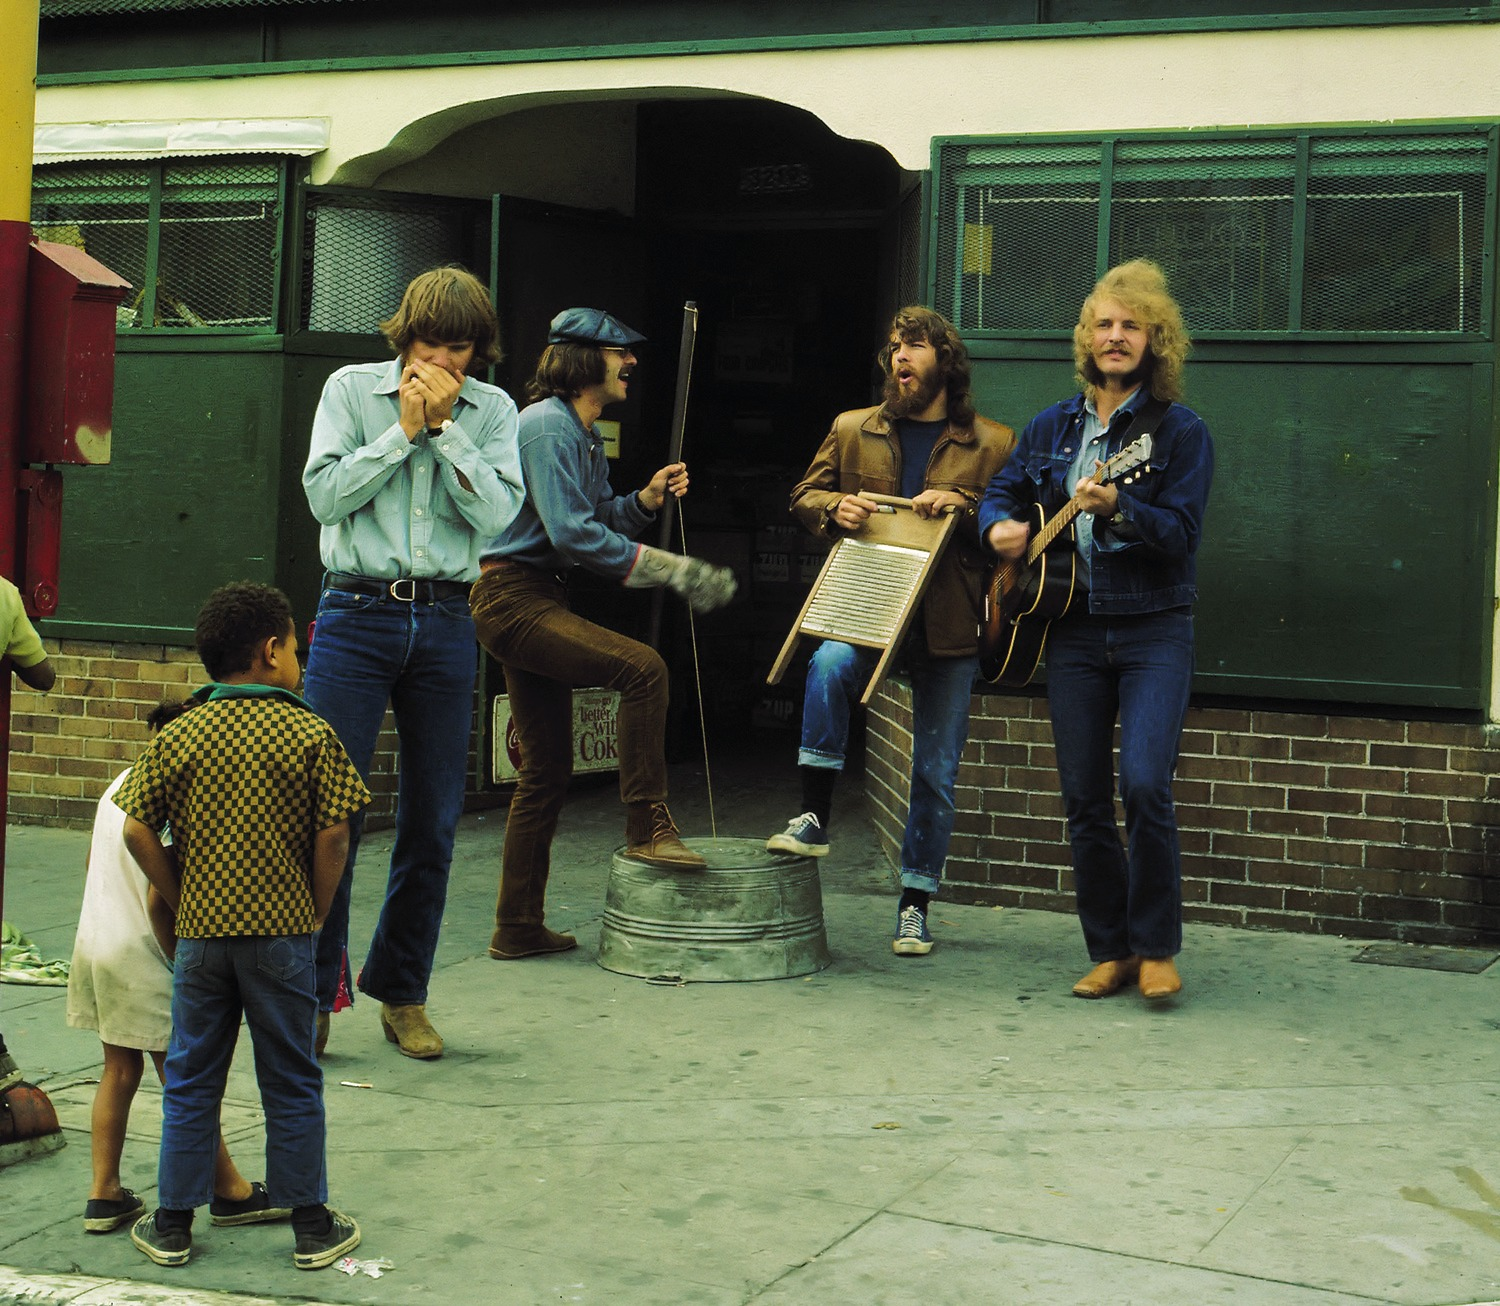 The 60s Official Site - Baby Boomer Memories Through Photos Creedence clearwater revival photos pictures